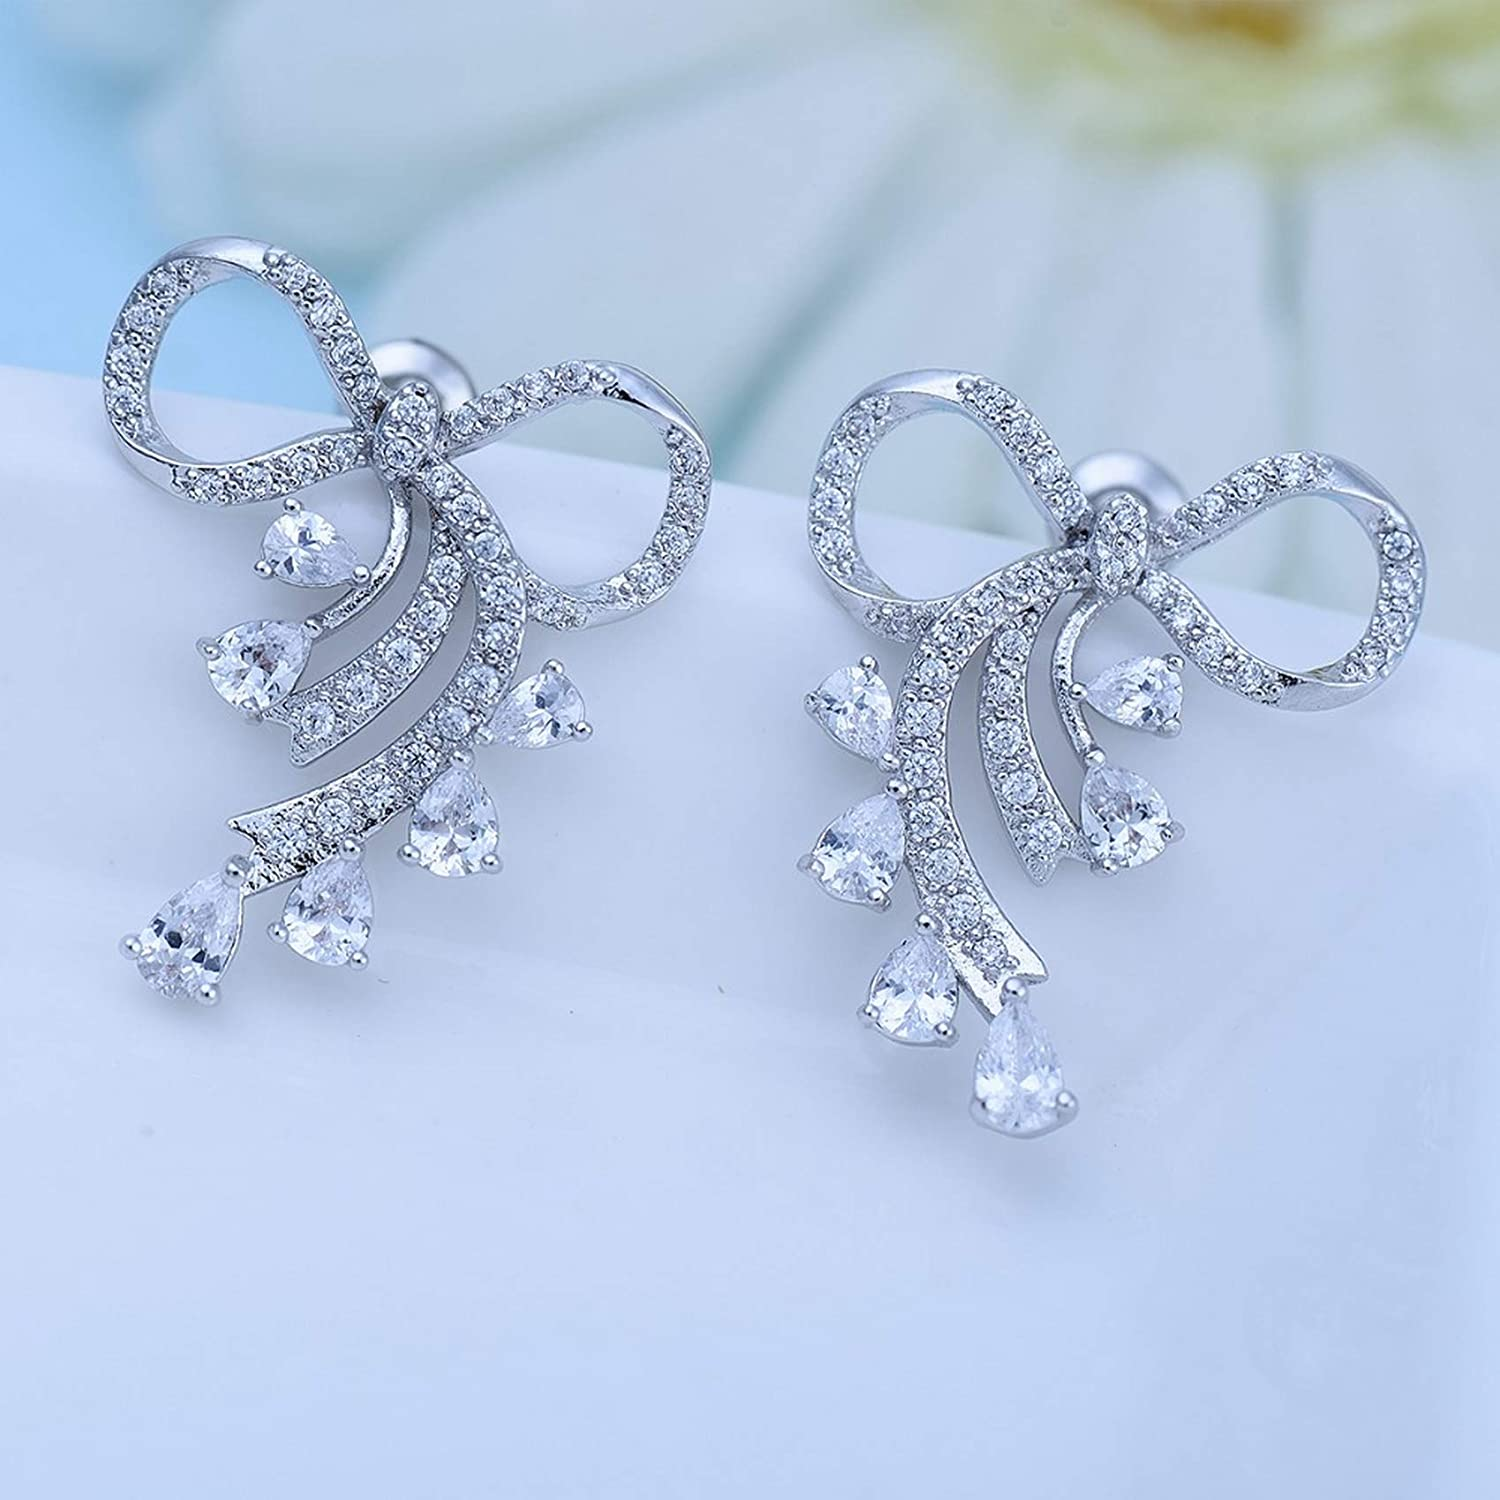 Silver Earrings By CS-DB Clear Round AAA Clear Cubic Zirconia Ribbon Bowknot Stud Earrings For Womens